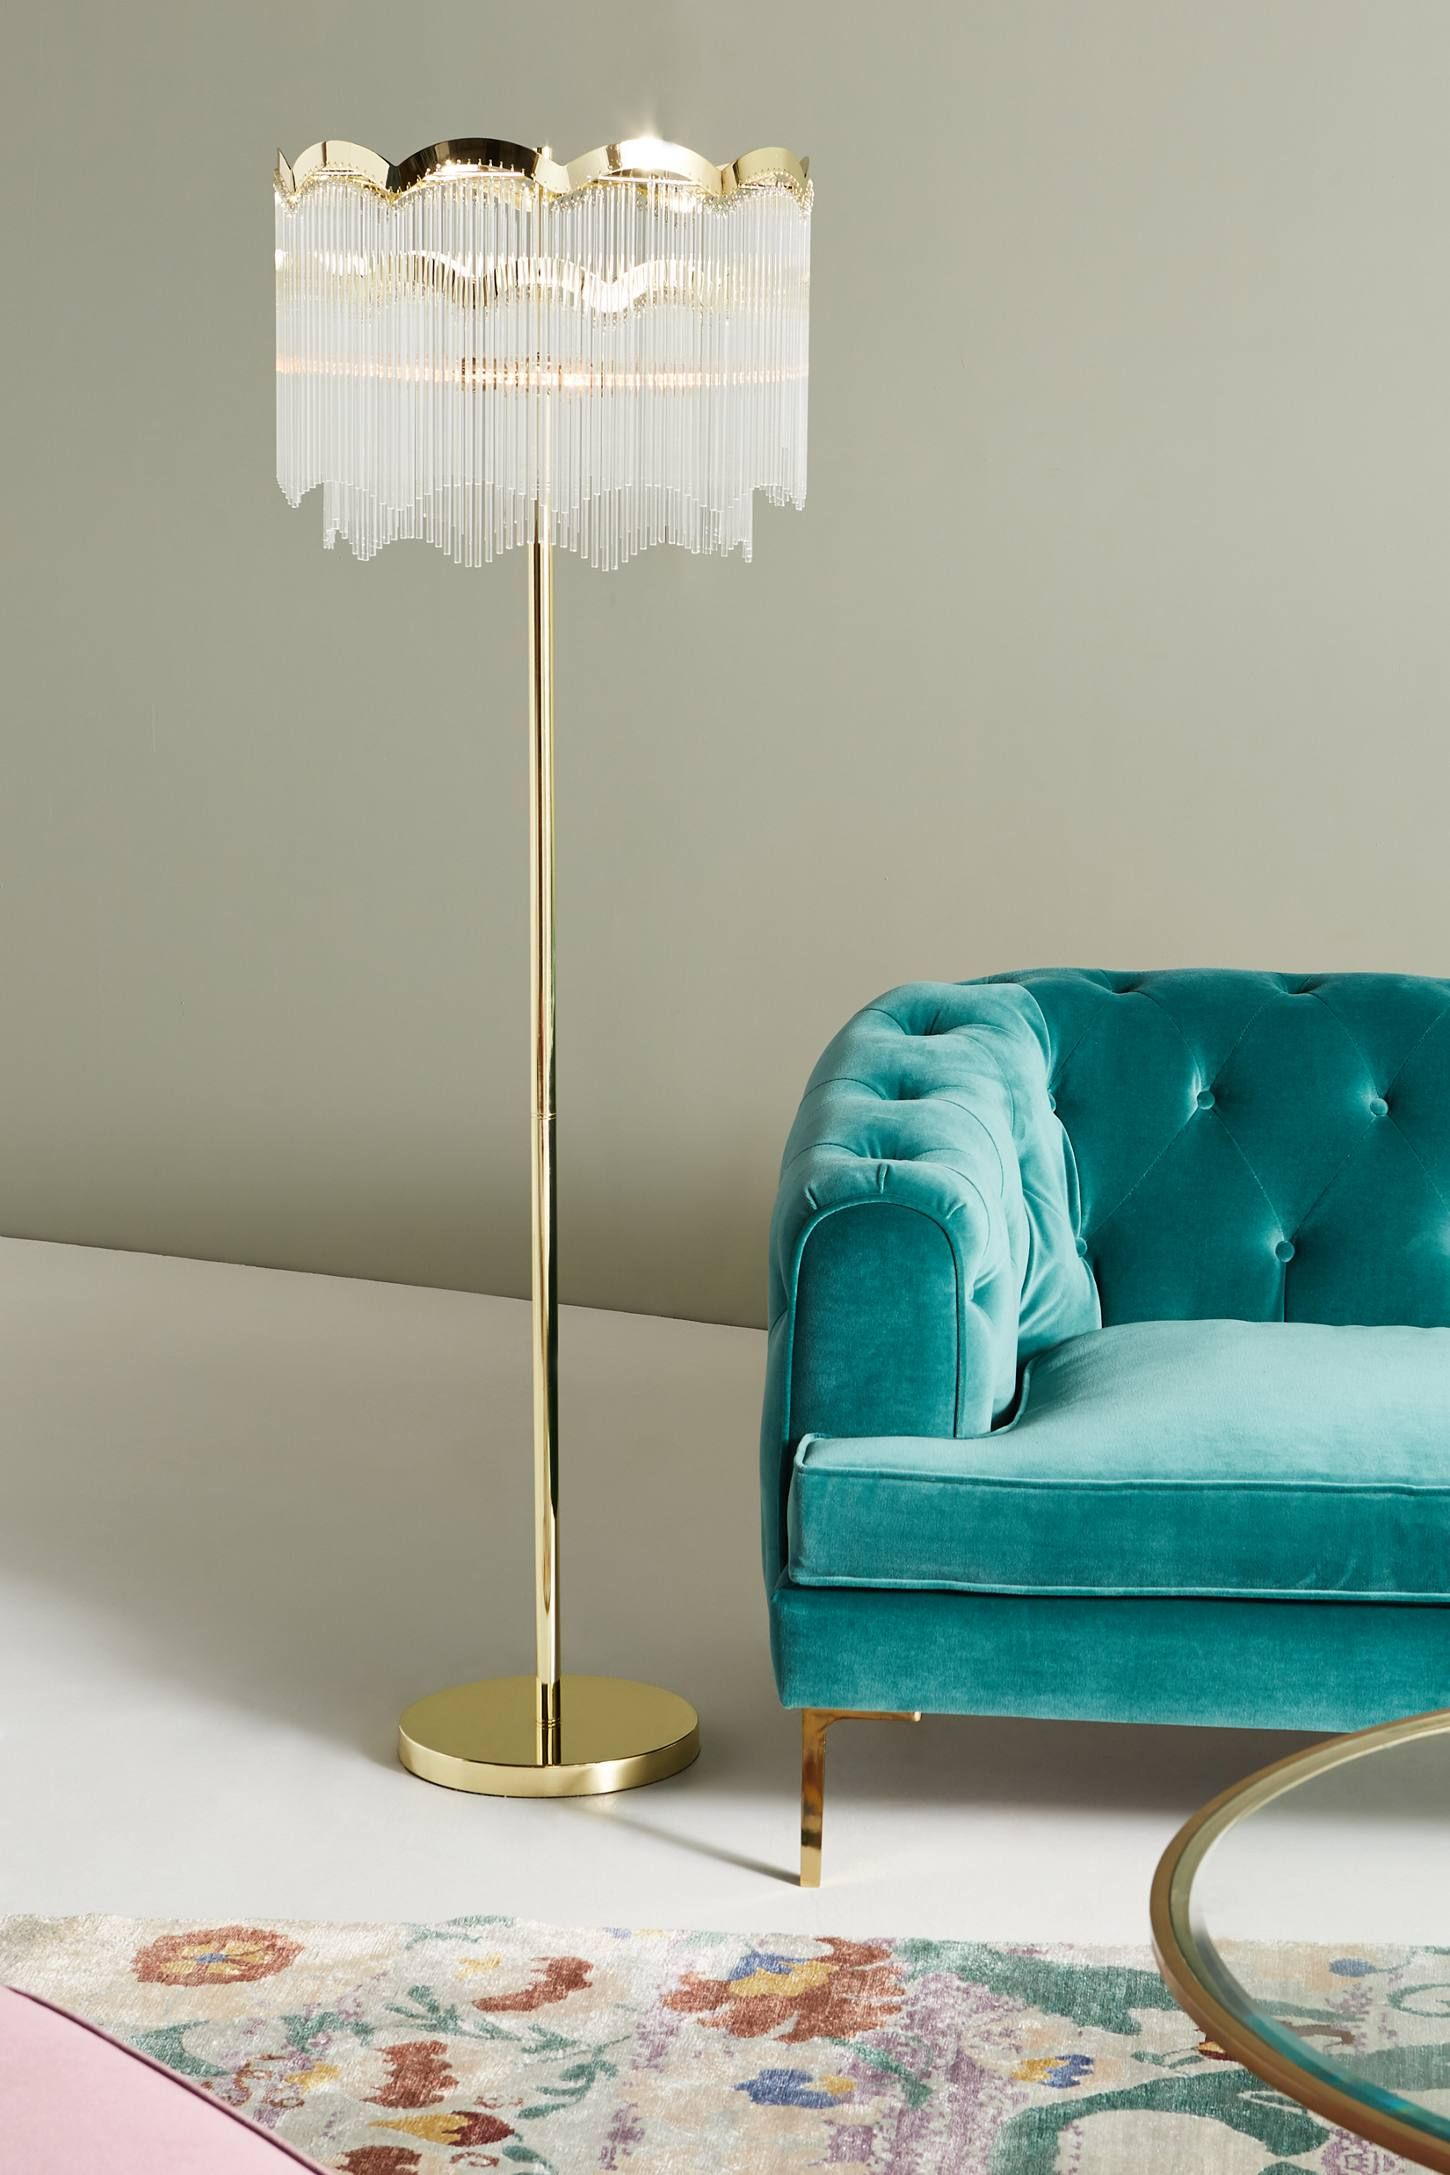 Living Room Waterfall Furniture Aarons Floor Lamp In 2018 Decor Pinterest Anthropologie House Goals My Dream Home